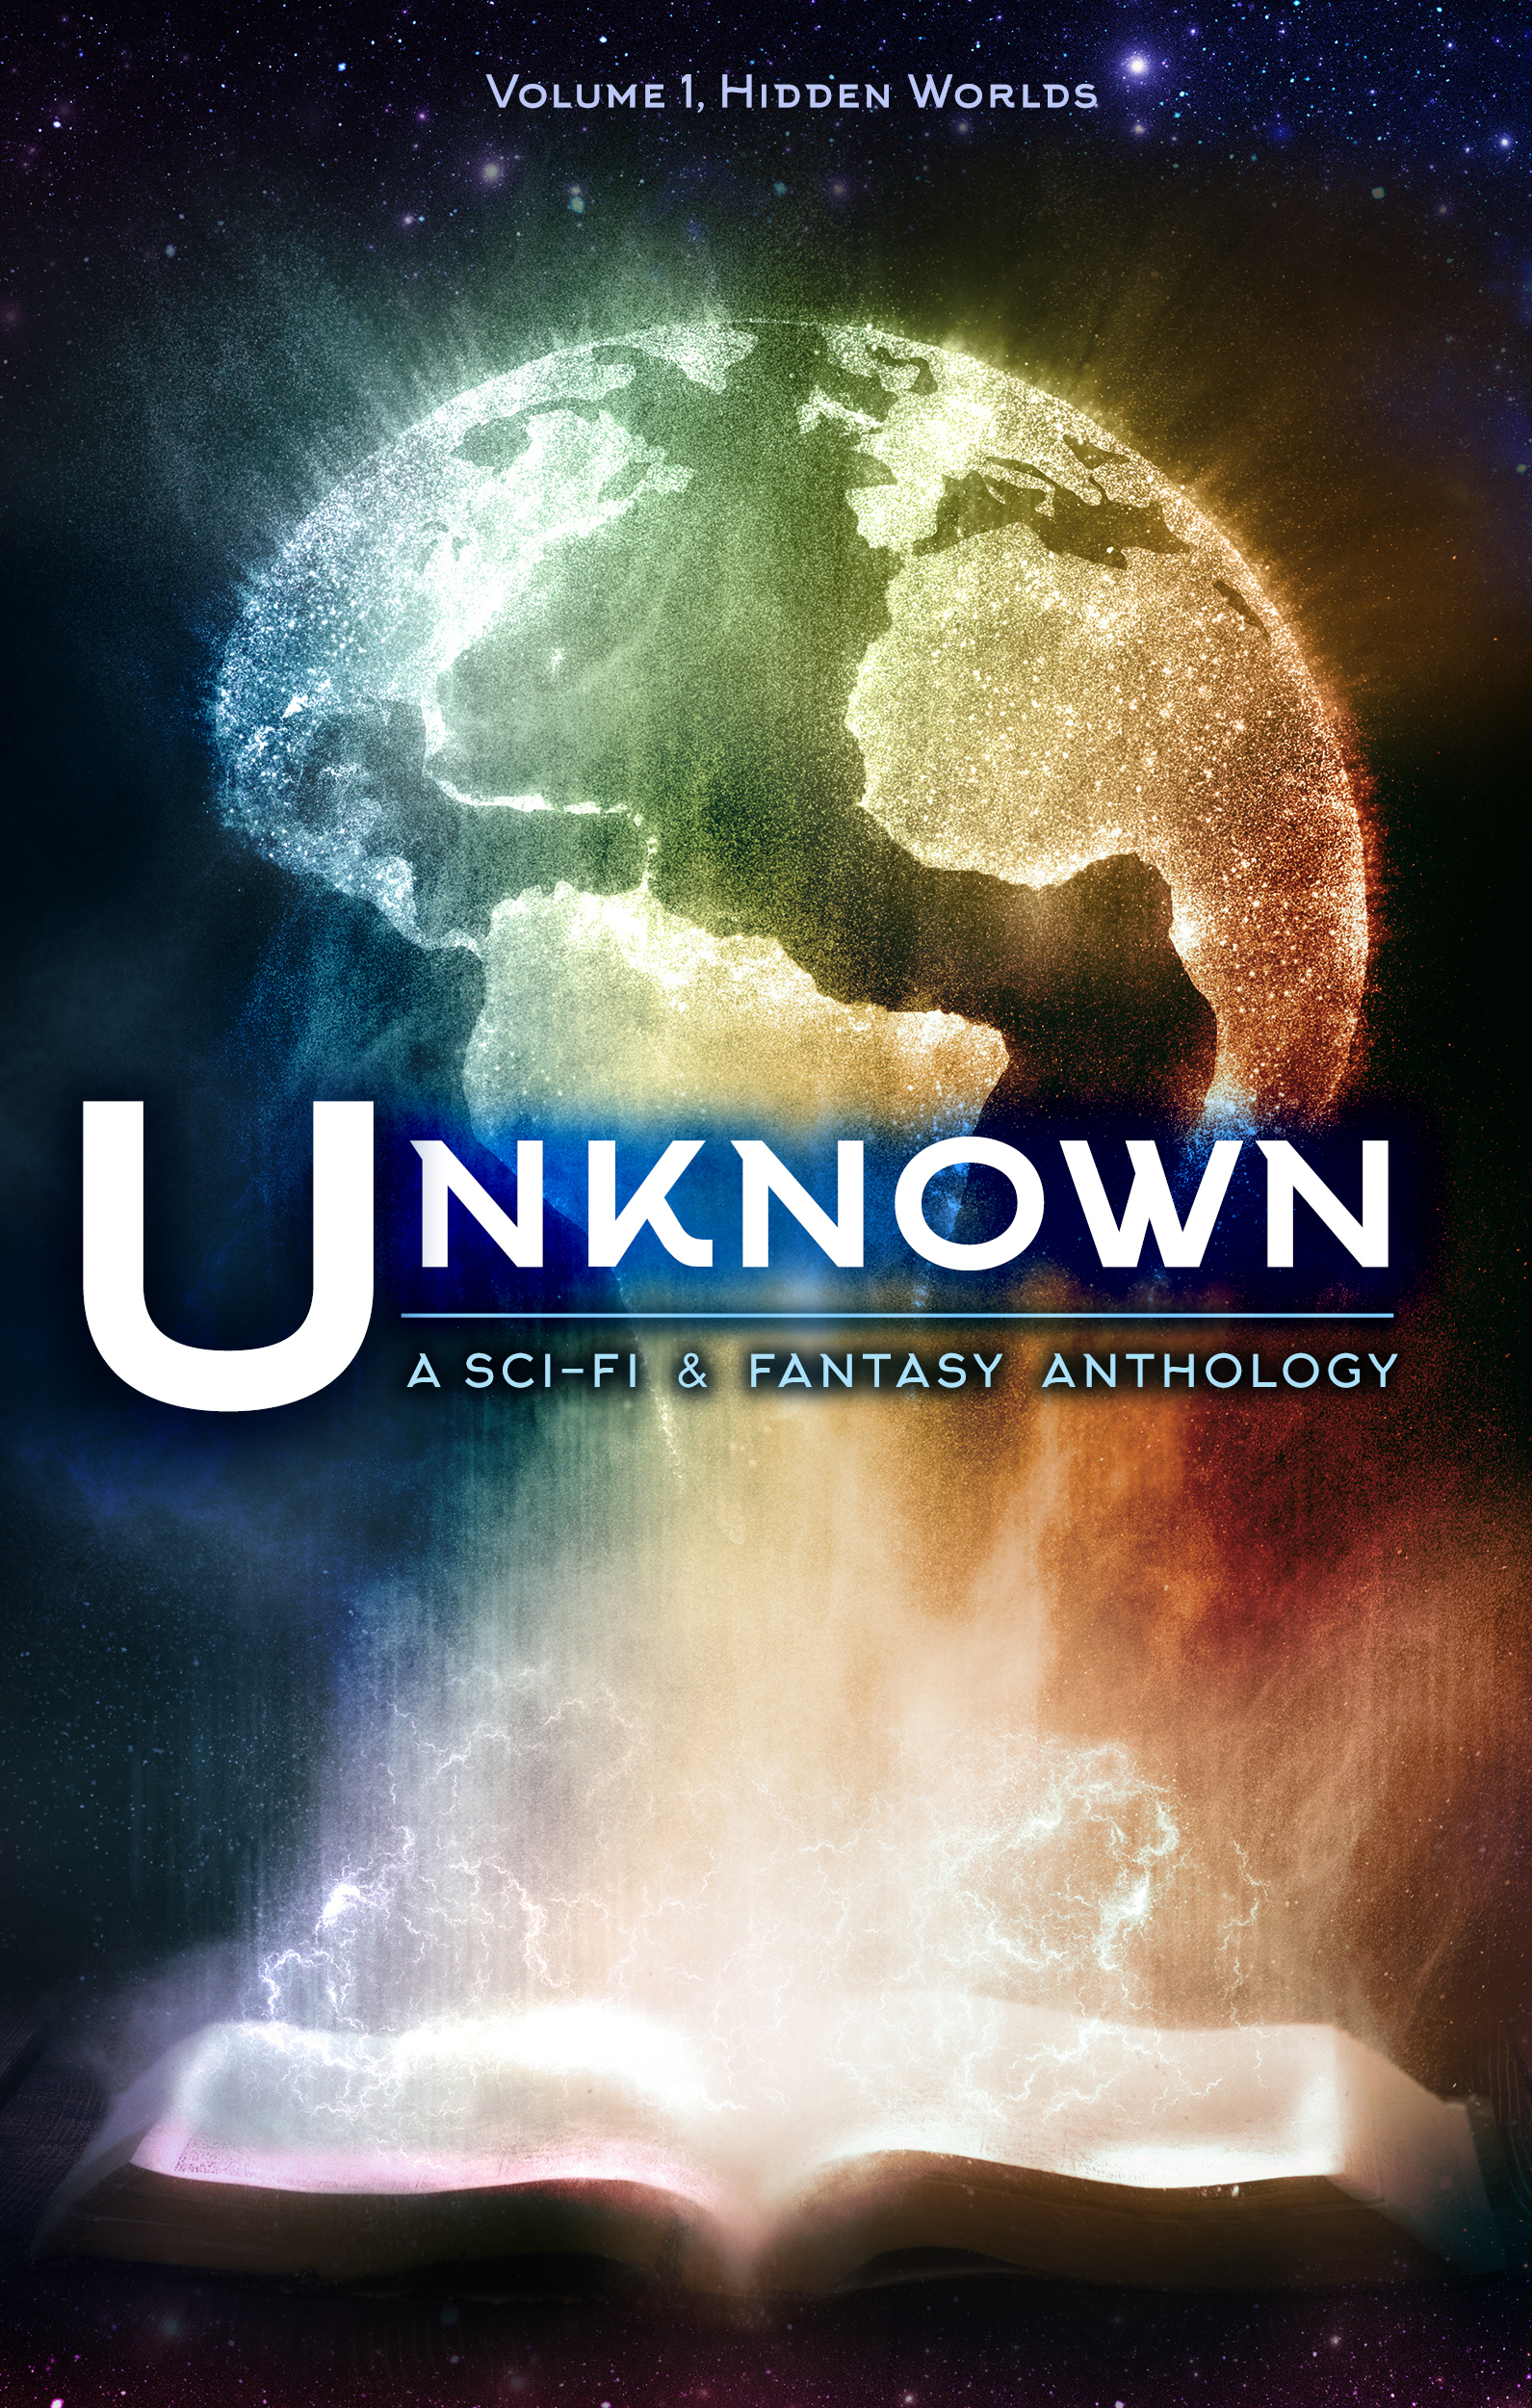 Unknown: A Collection of Sci-Fi and Fantasy Stories